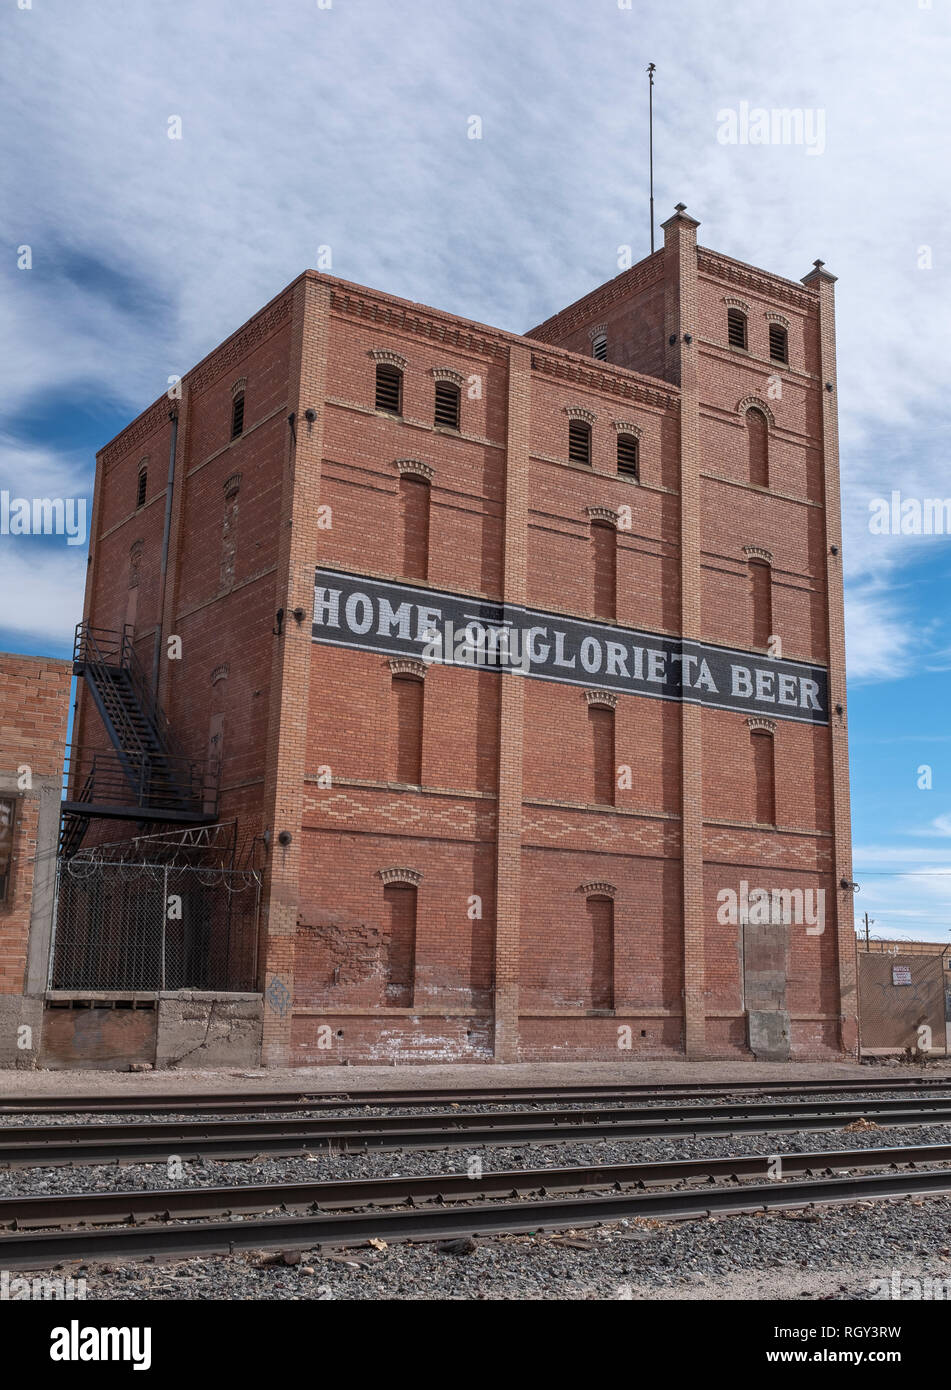 Southwestern Brewery and Ice Company: Home of Glorieta Beer - Stock Image